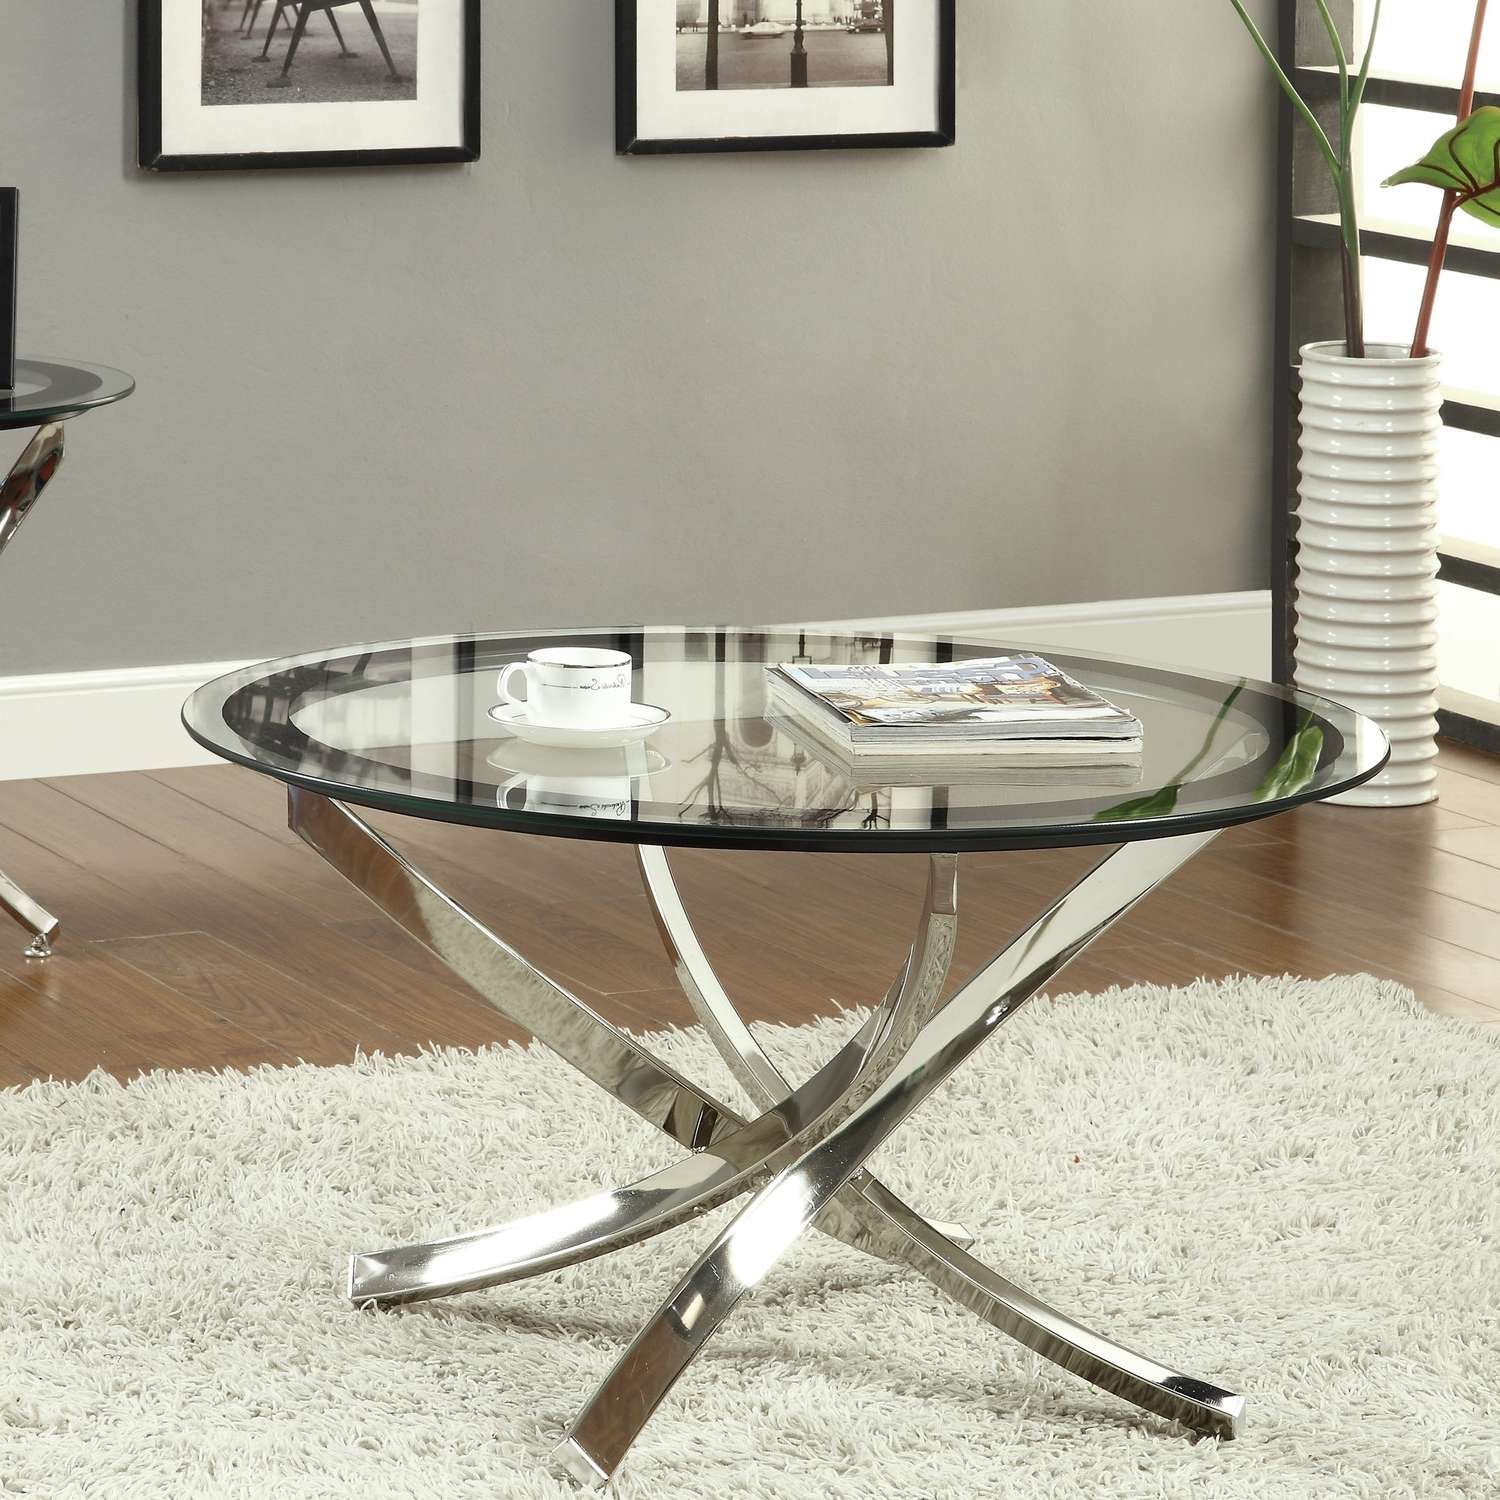 All Glass Pompidou Metal & Glass Coffee Table Large Table Regarding 2017 Coffee Tables Glass And Metal (View 16 of 20)